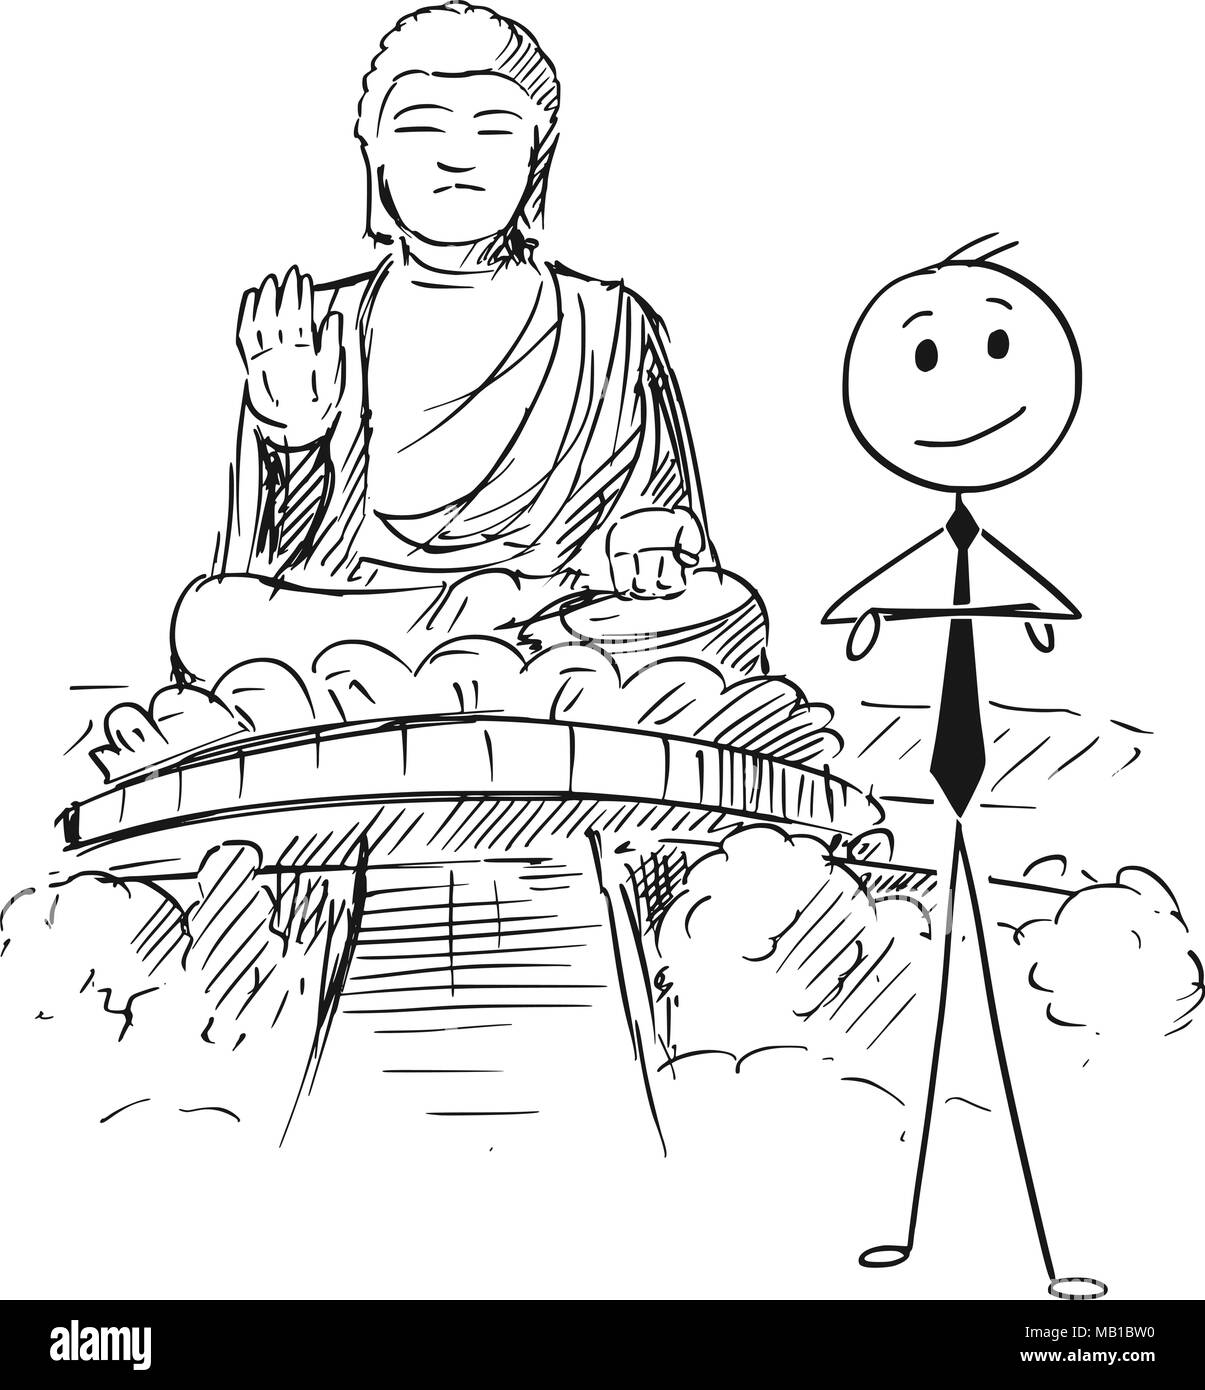 Cartoon of Businessman Standing in Front of the Tian Tan or Big Buddha statue, Hong Kong - Stock Vector